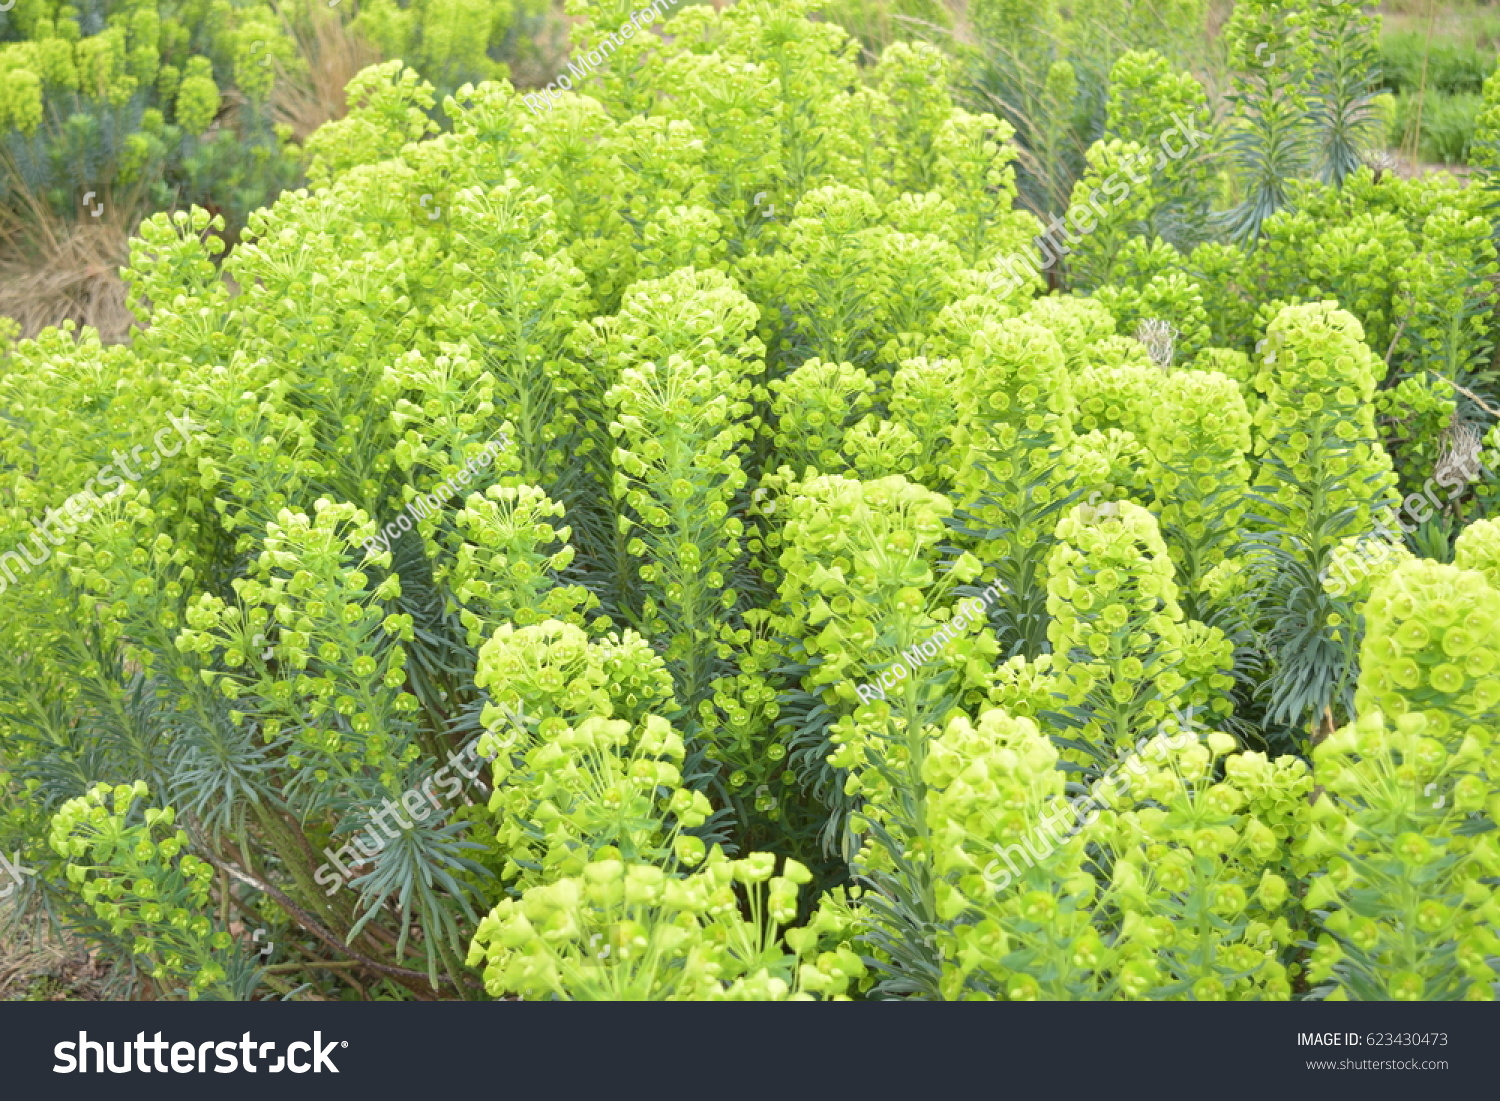 Bright Green Plants Growing Soil Stock Photo Edit Now 623430473